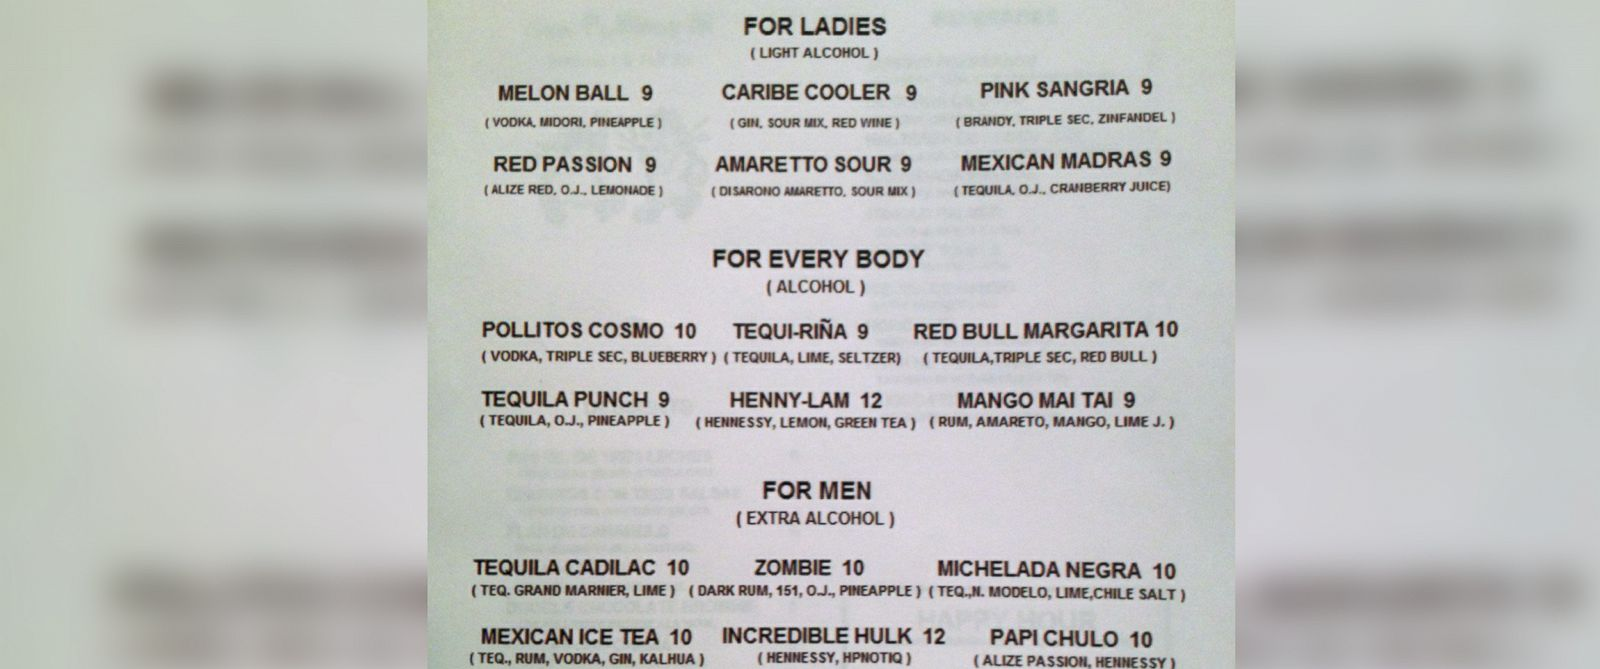 PHOTO: The drink menu for the Los Pollitos III restaurant in Brooklyn, N.Y. lists different categories of drinks for women and men with respectively lower and higher levels of alcohol.